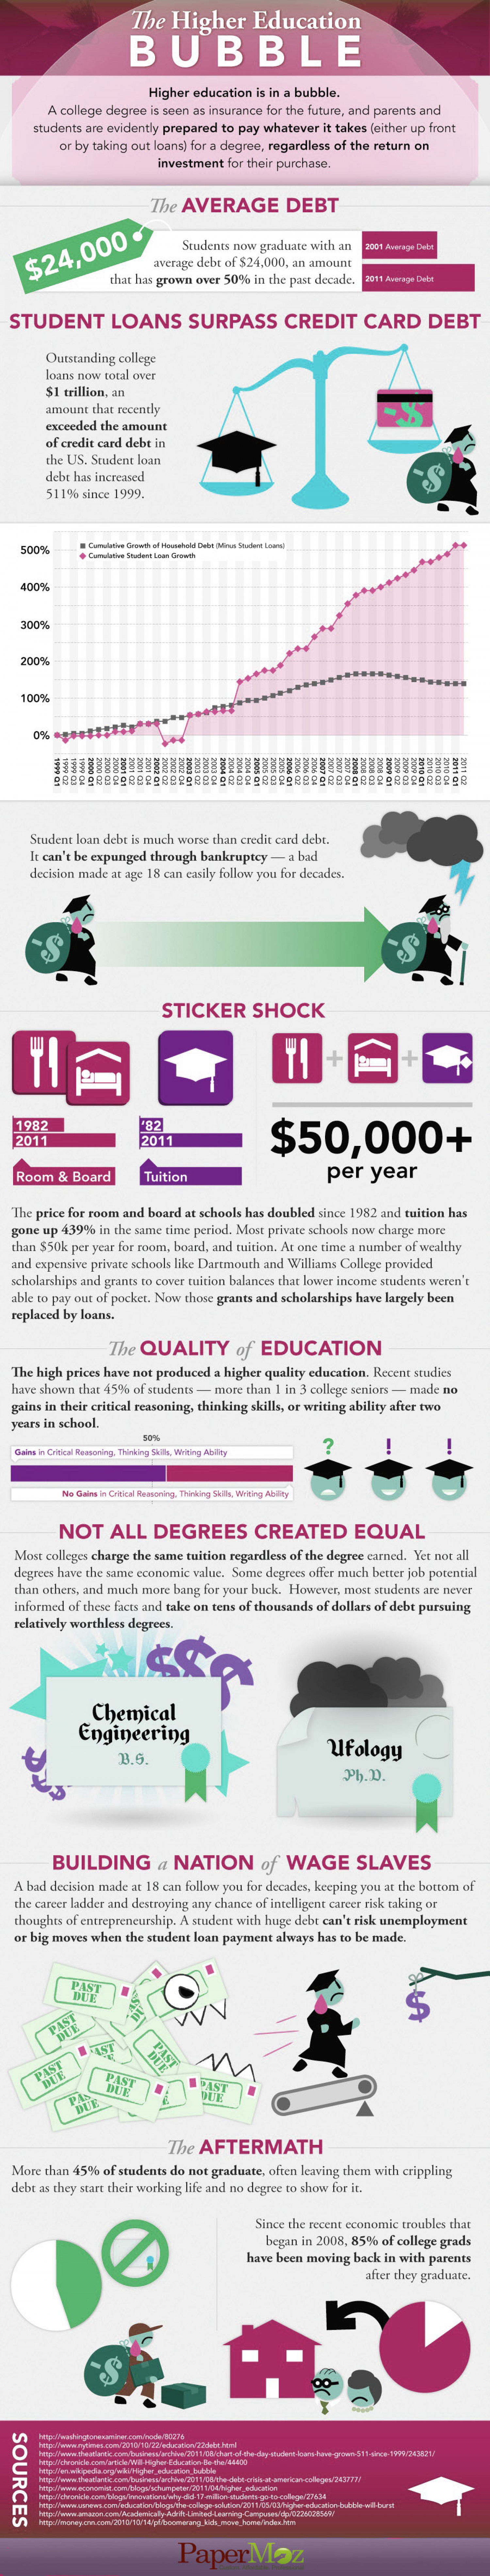 The Bubble of High Education Infographic